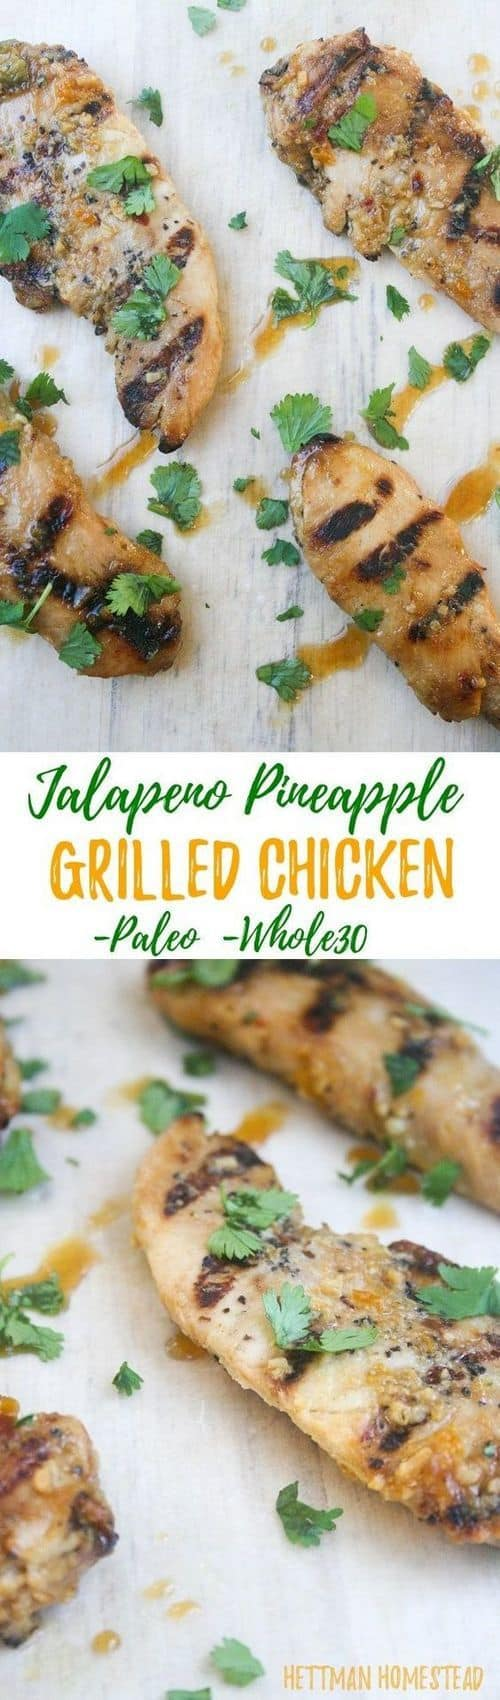 jalapeno-pineapple-grilled-chicken